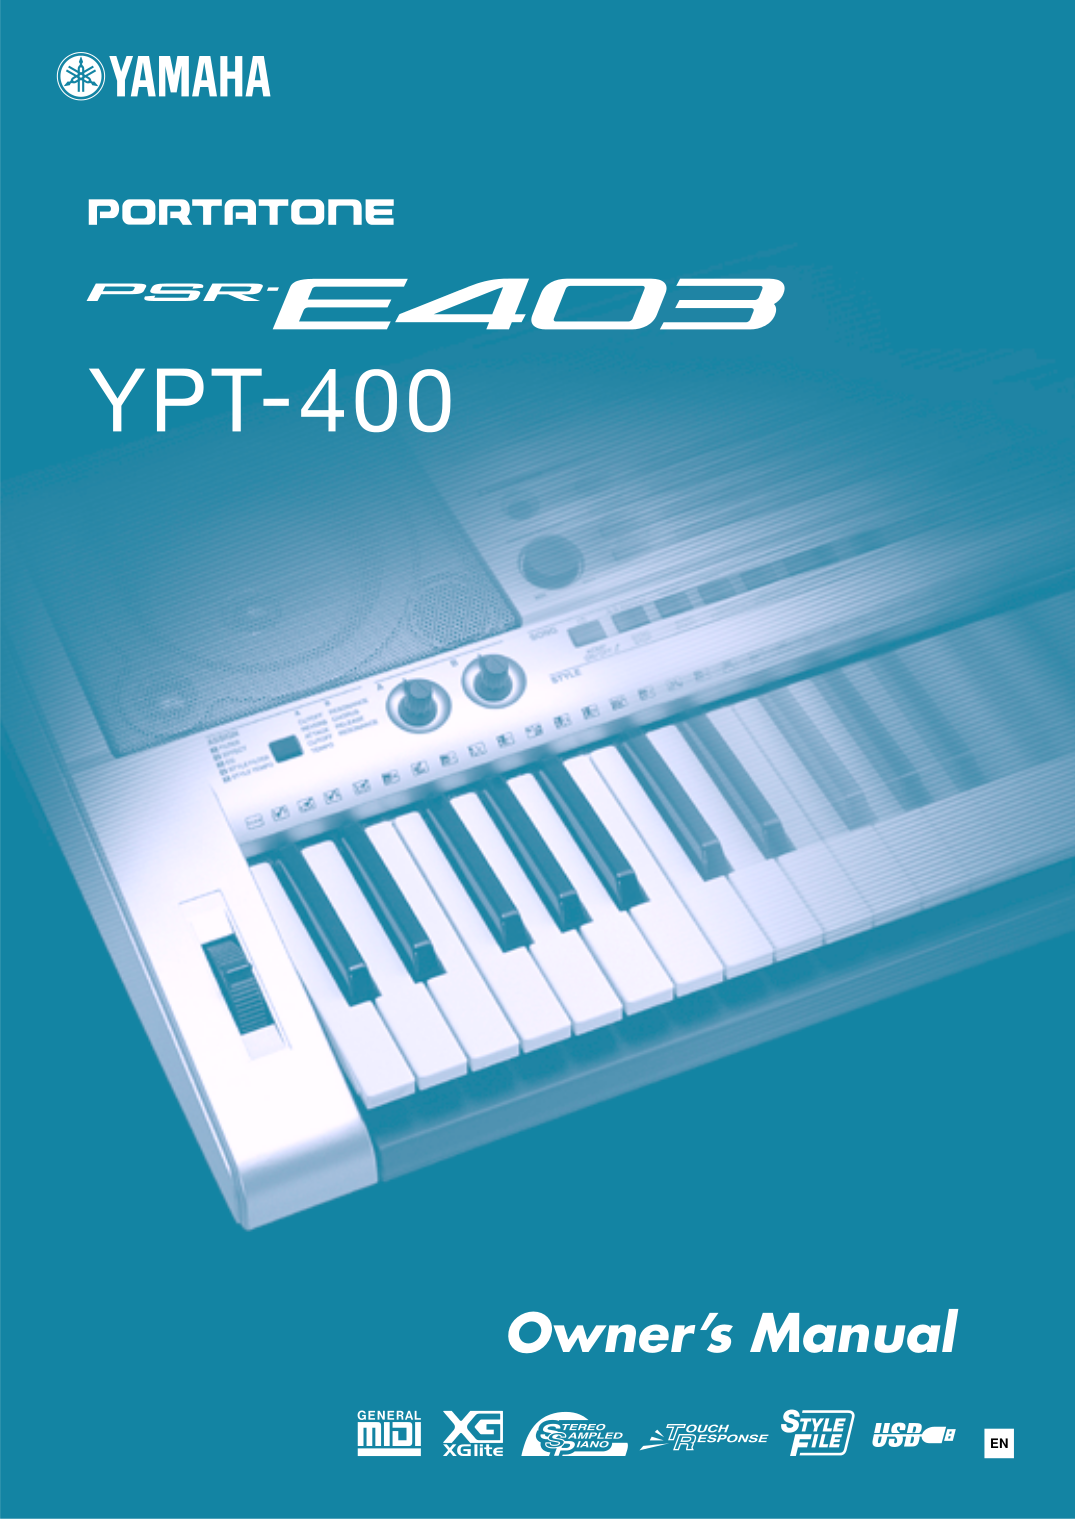 download free pdf for yamaha psr 282 music keyboard manual rh umlib com Yamaha PSR Gx76 Portable Yamaha Keyboards PSR-282